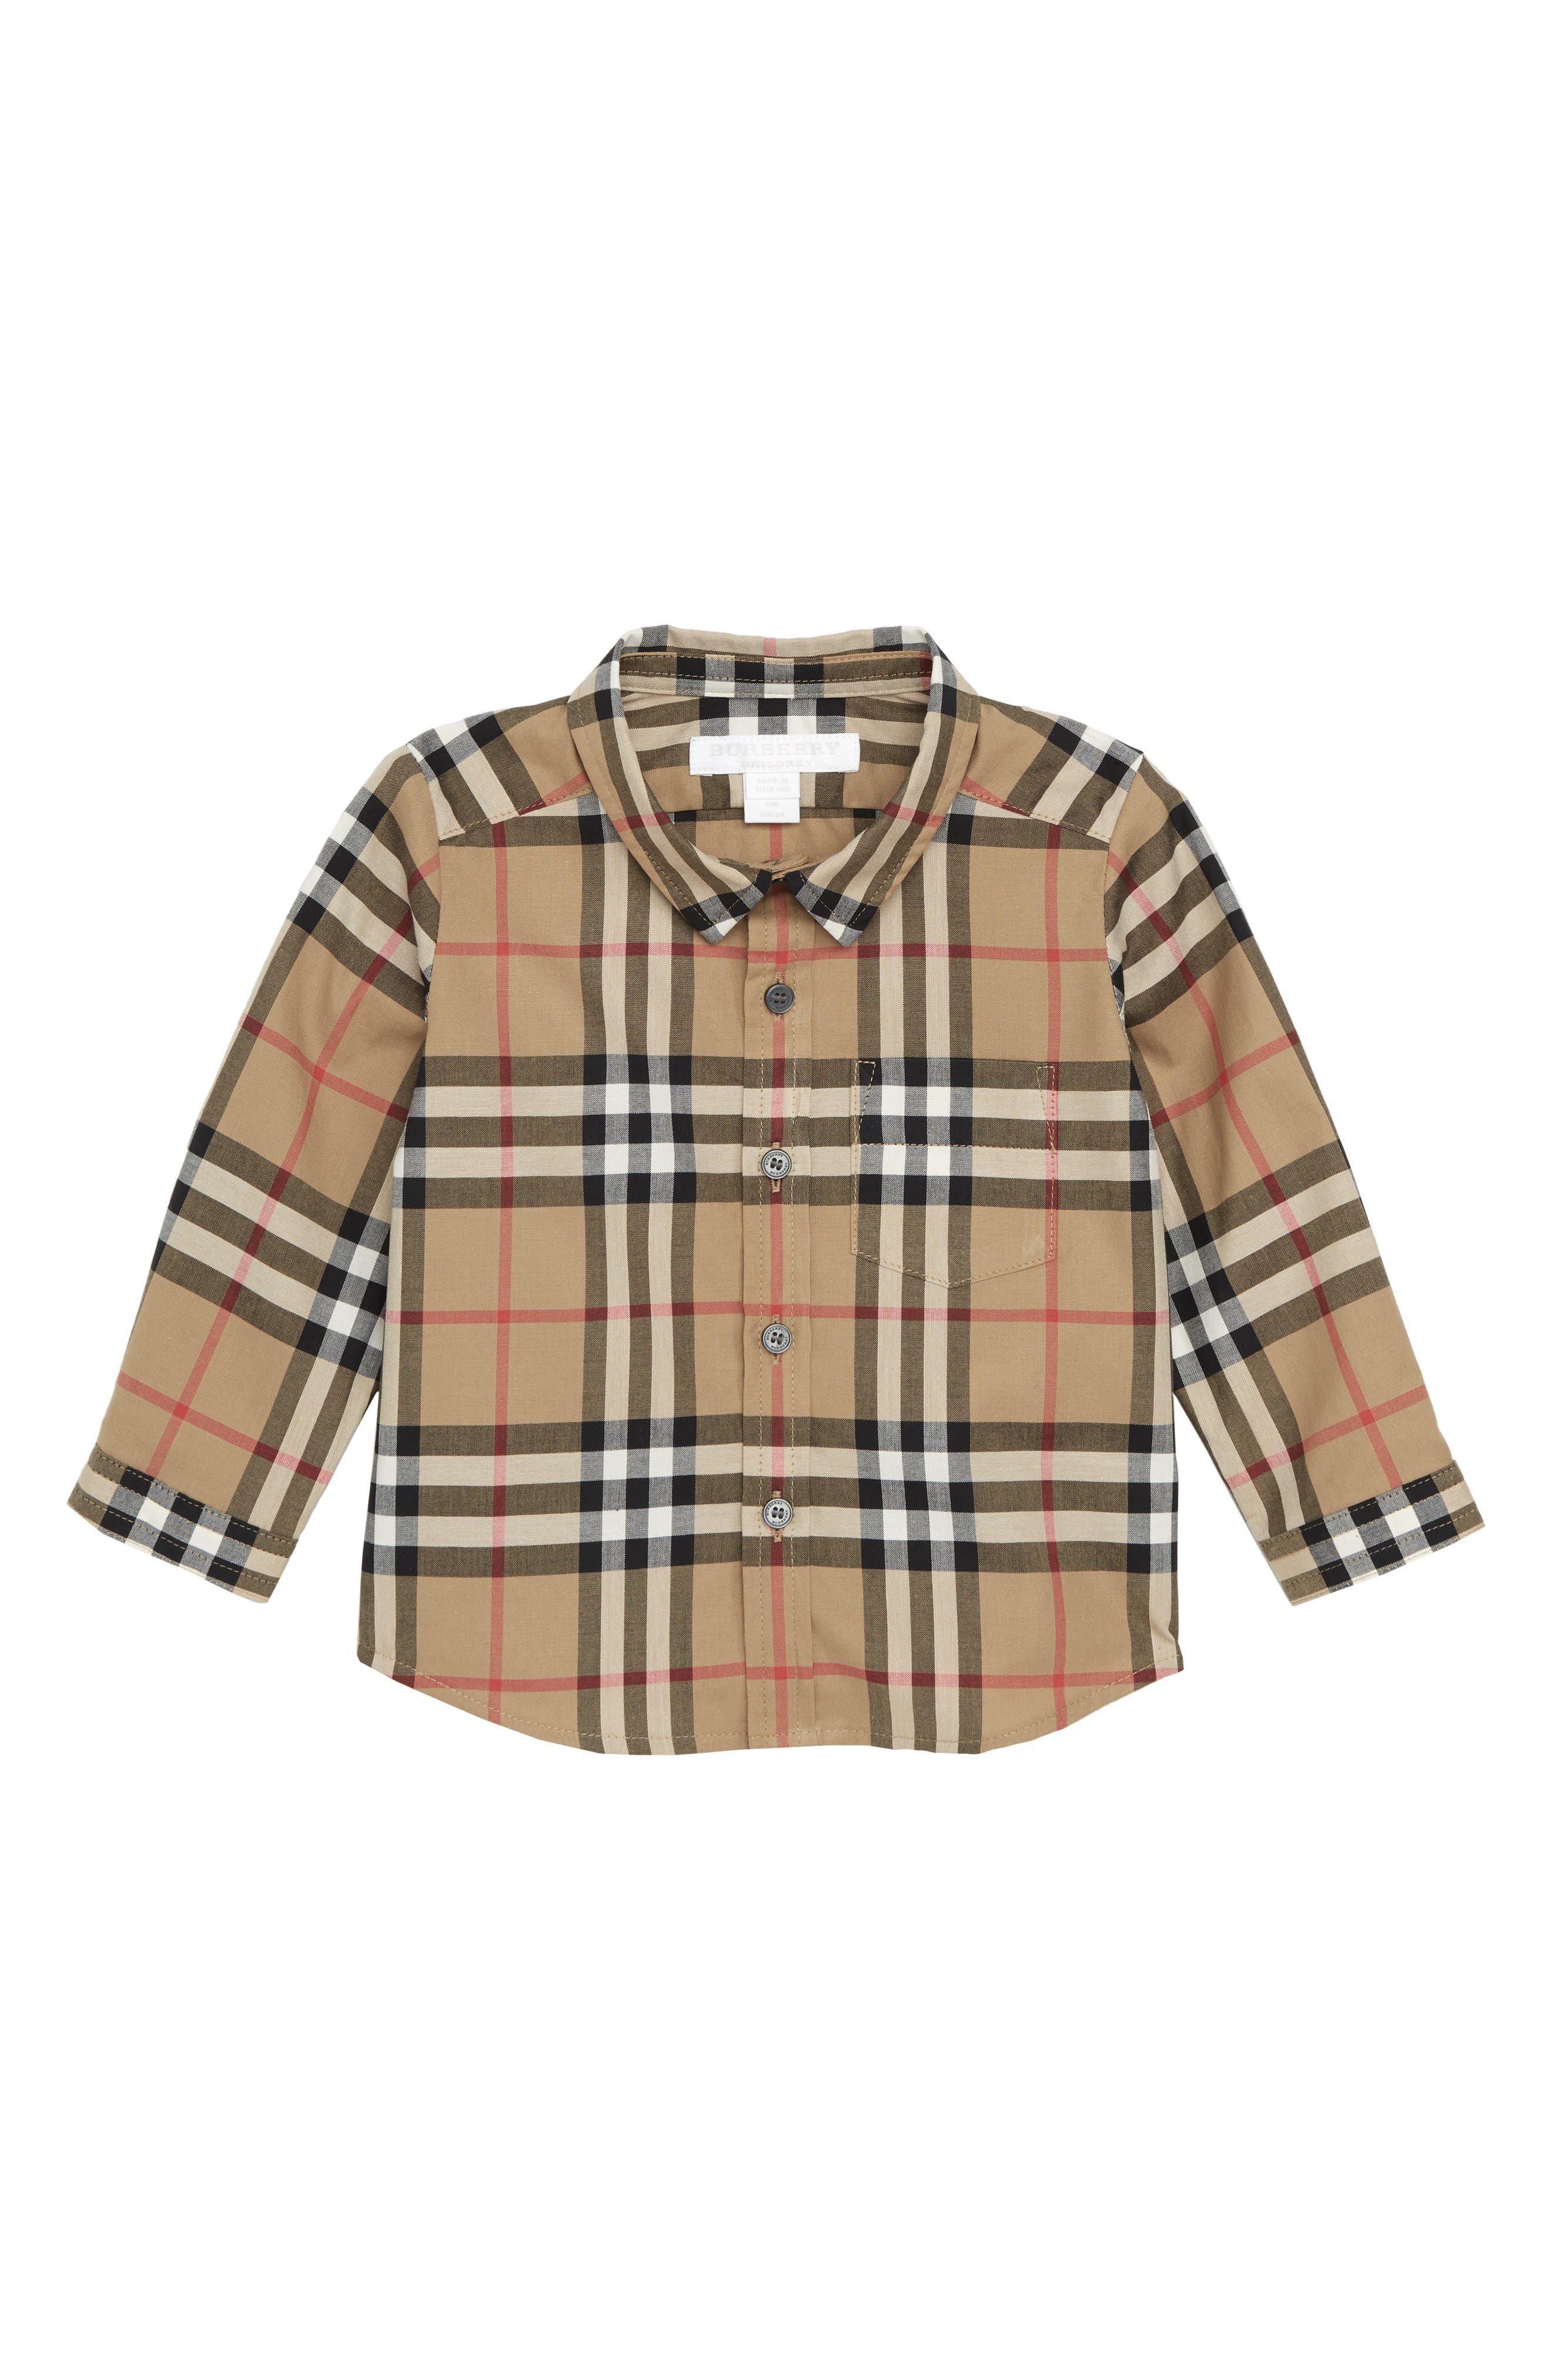 BURBERRY Fred Plaid Shirt, Main, color, ANTIQUE YELLOW